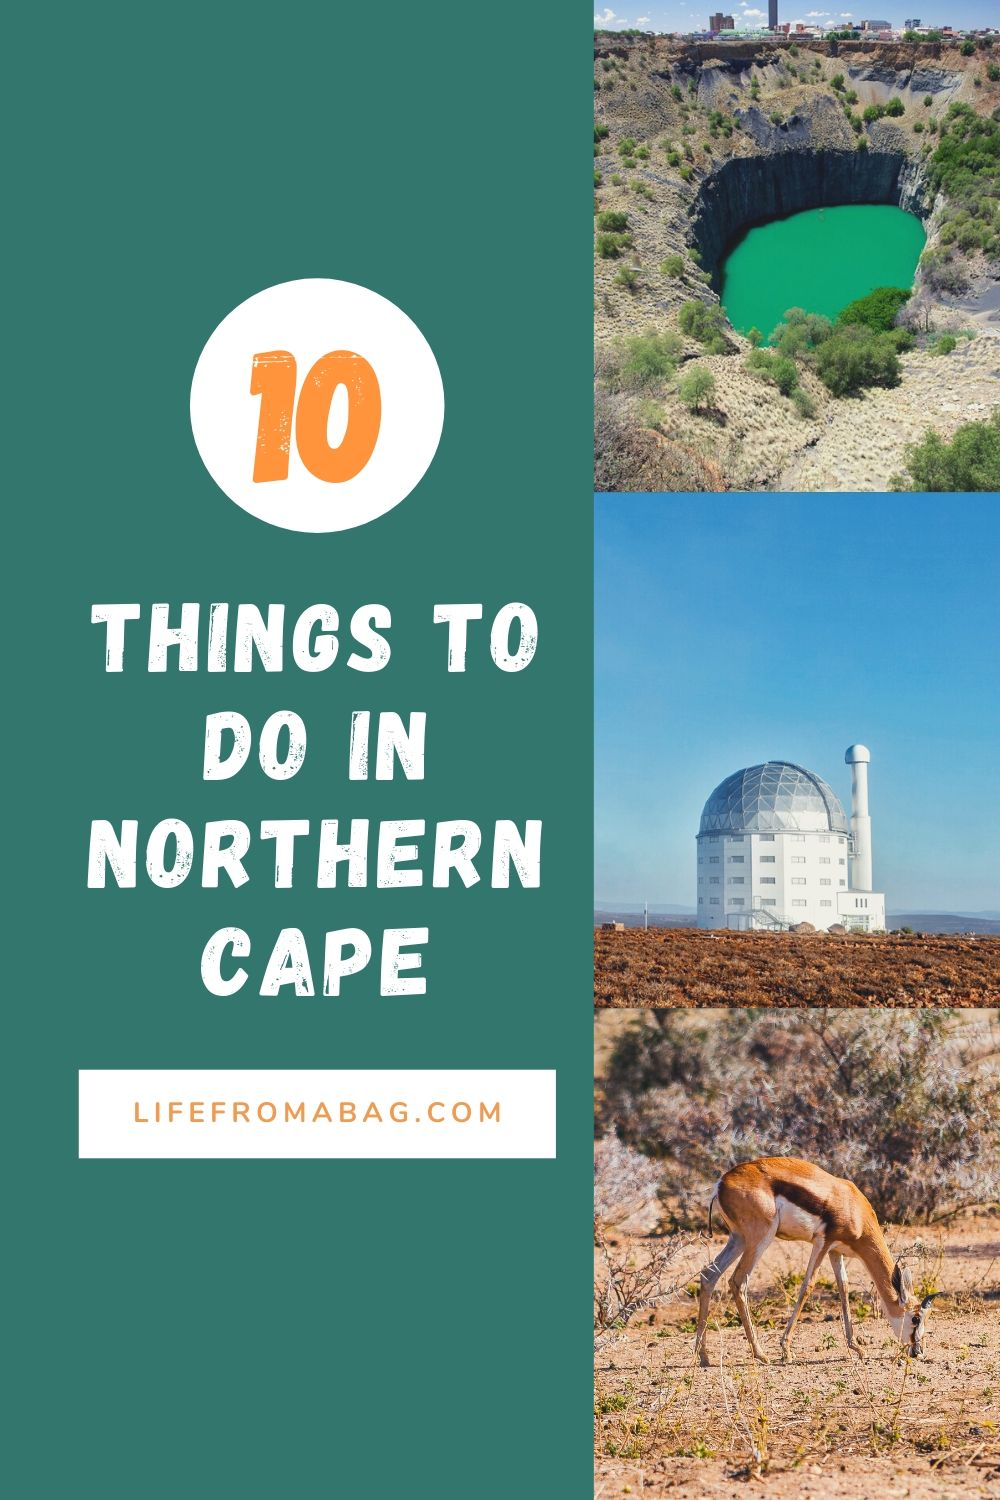 Things to do in Northern Cape